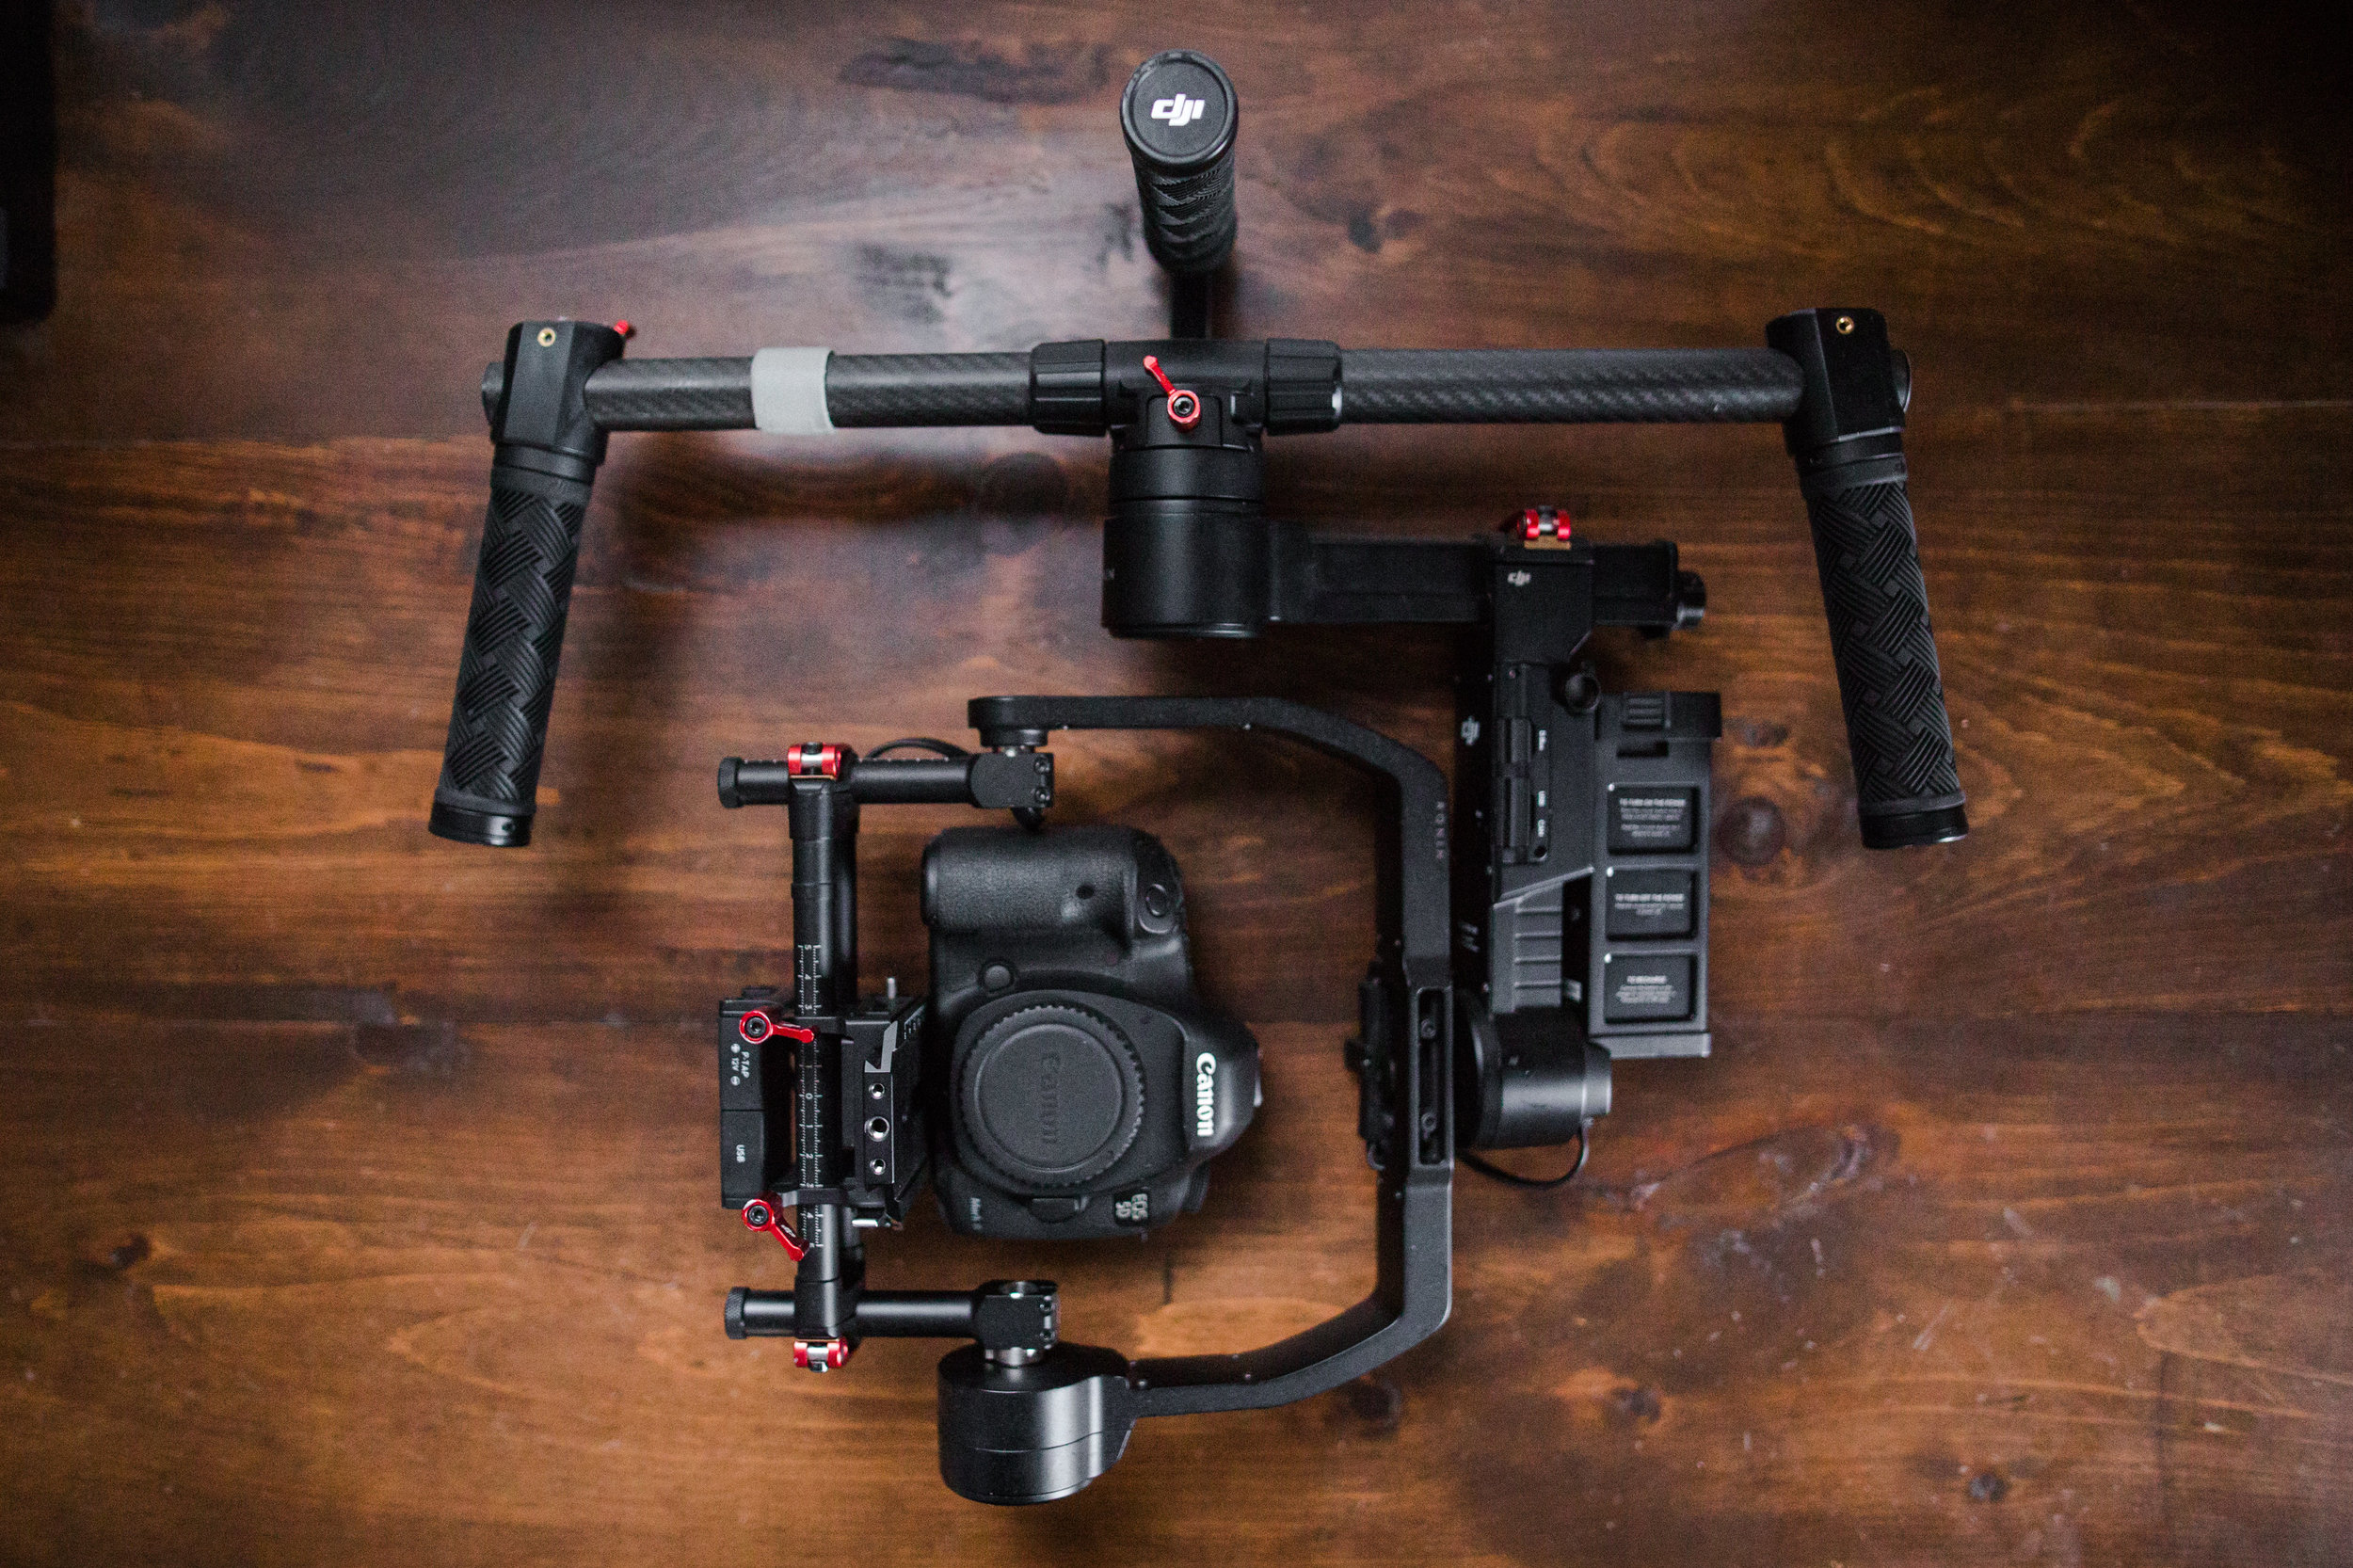 The DJI RoninM and the Canon Mark III are a perfect match for me. The RoninM delivers extremely smooth footage and in a compact, lightweight form factor.  Perfect for wedding filmmaking.